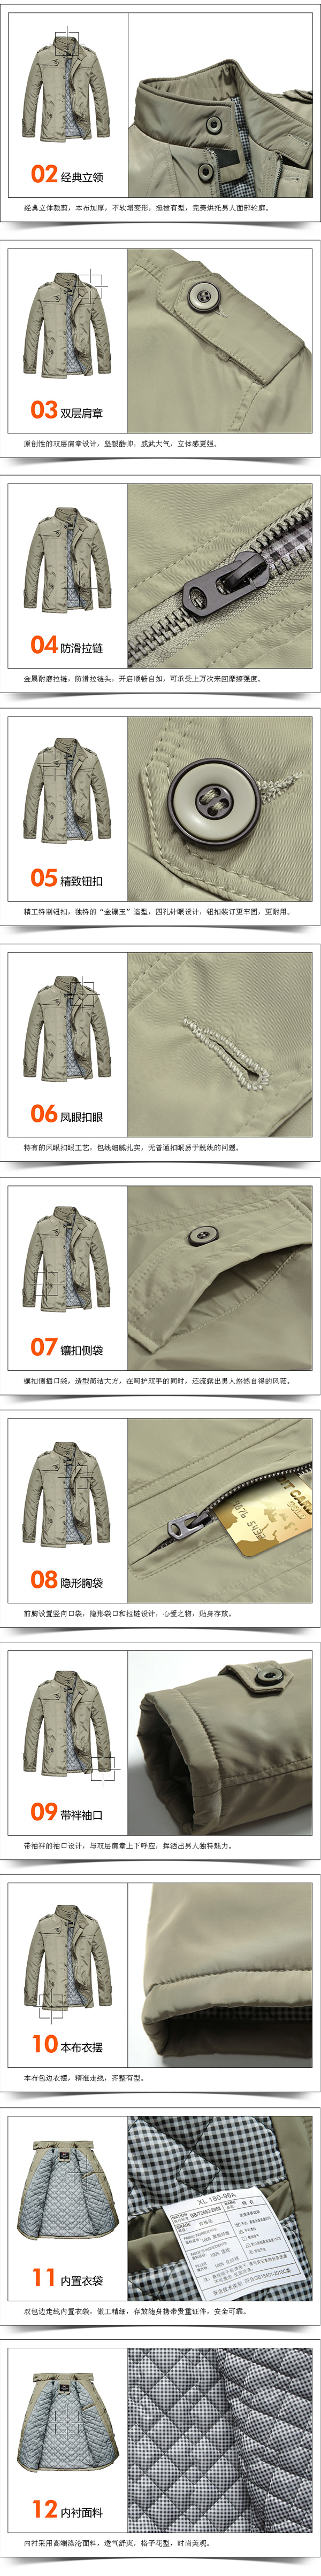 mens-smart-casual-slim-fit-cotton-padded-winter-jacket-d001